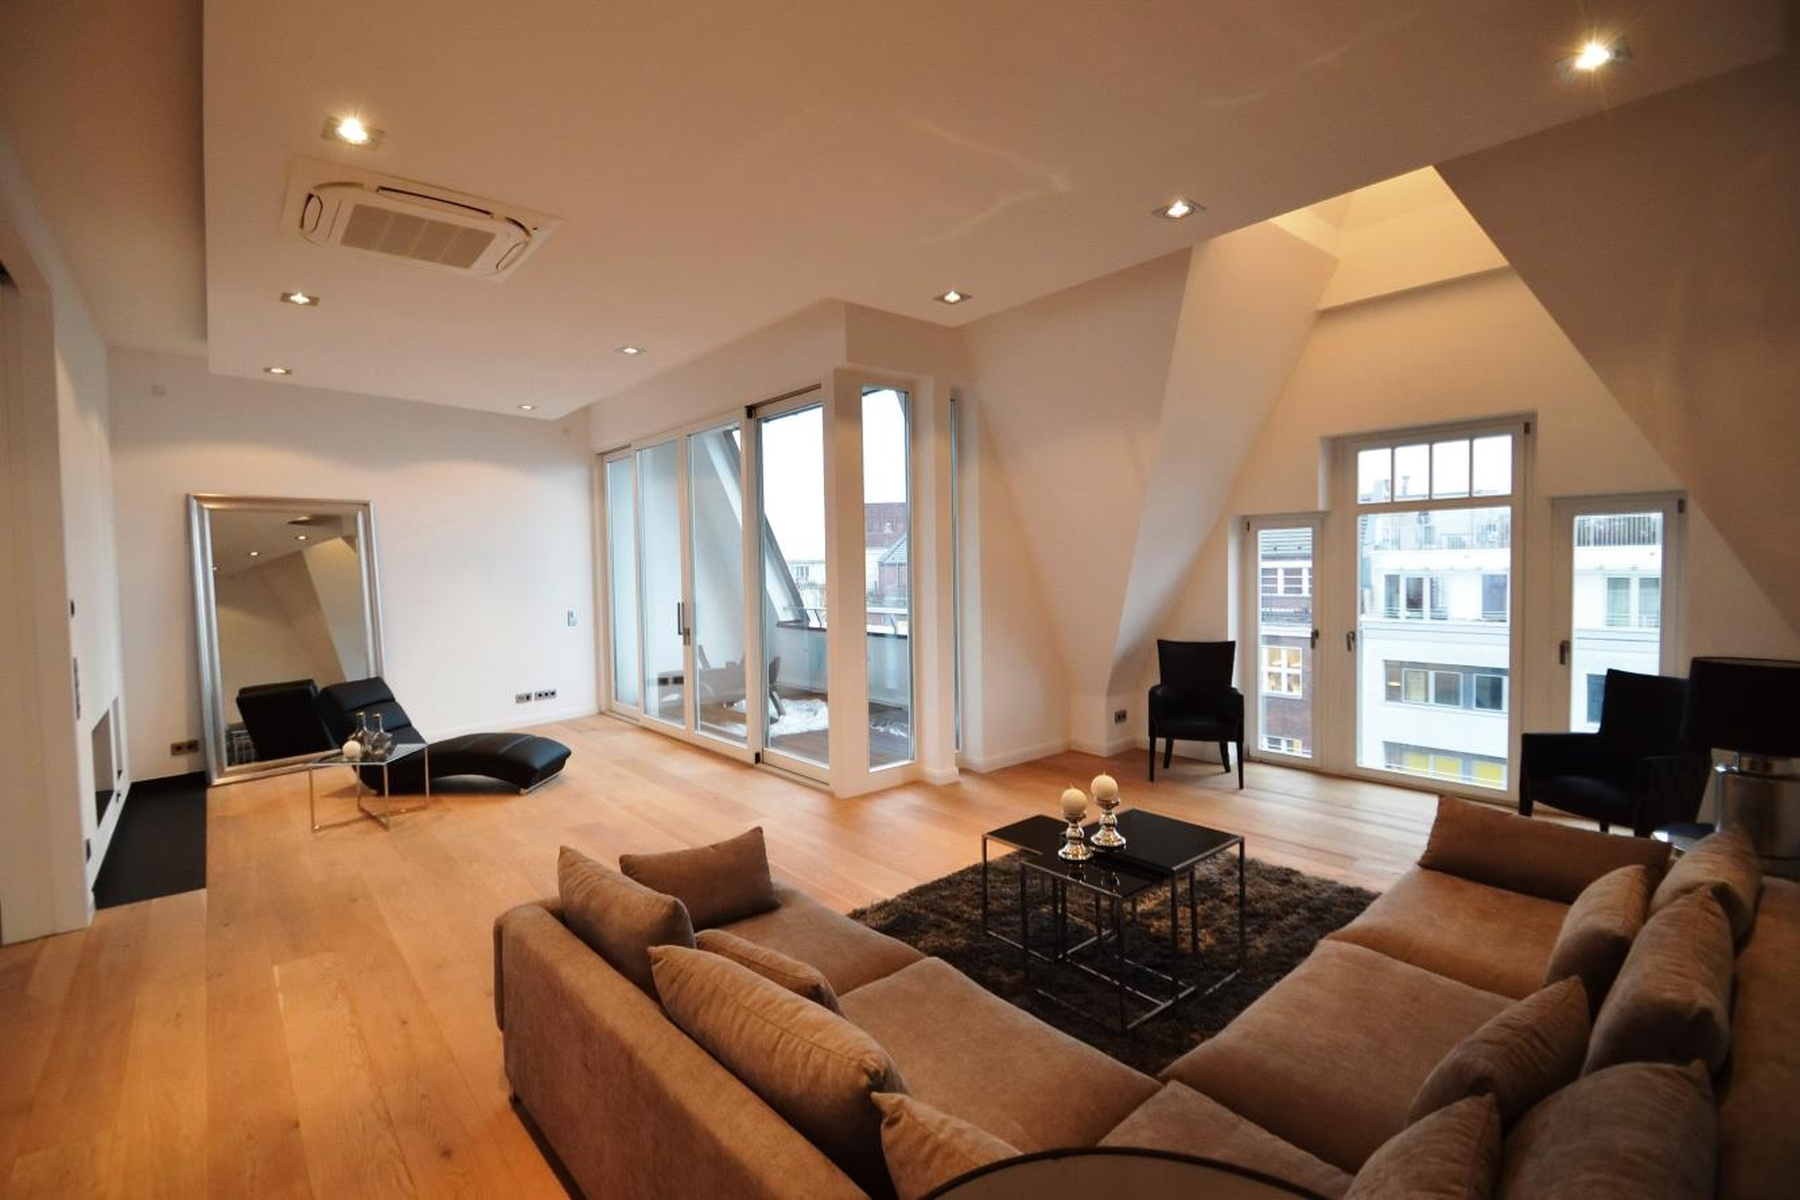 Apartamento para Venda às Luxuriously developed Penthouse with Rooftop Terrace! Berlin, Berlim, 10707 Alemanha